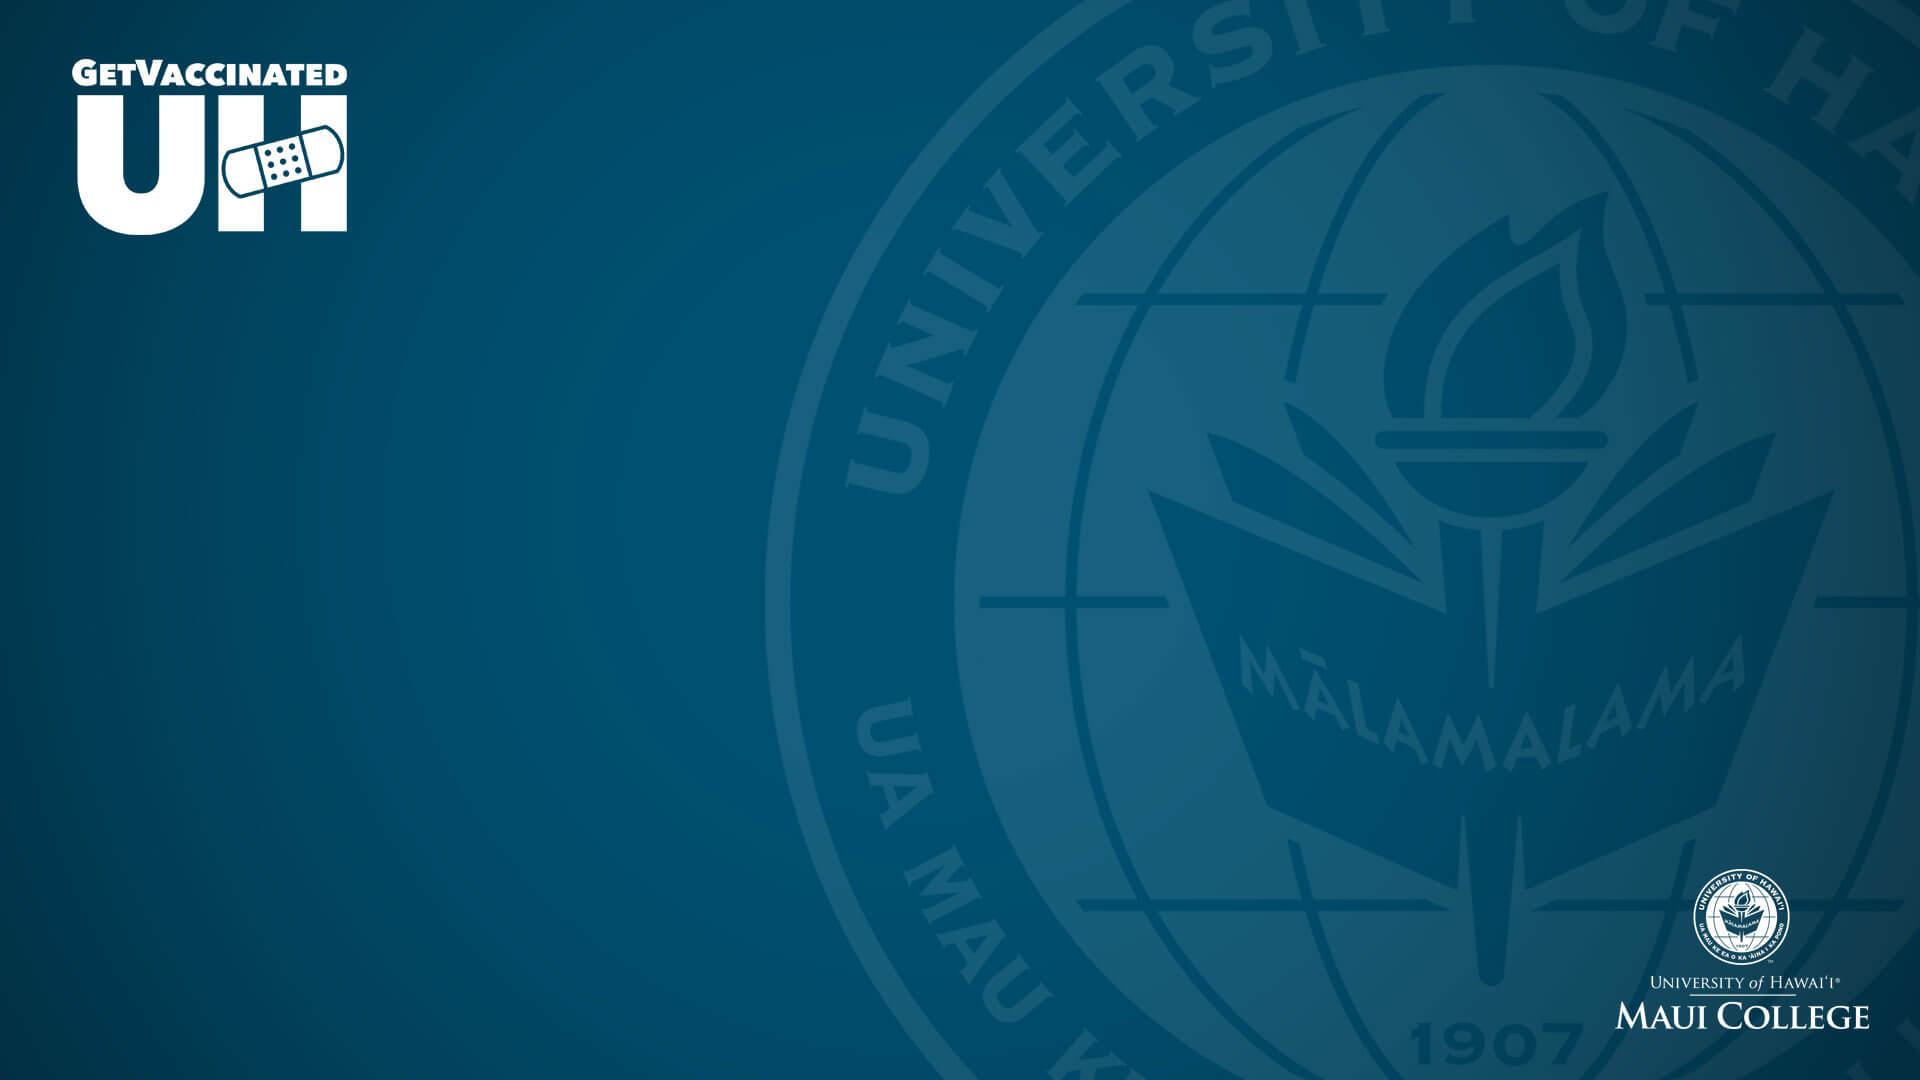 Maui College get vaccinated with seal and nameplate